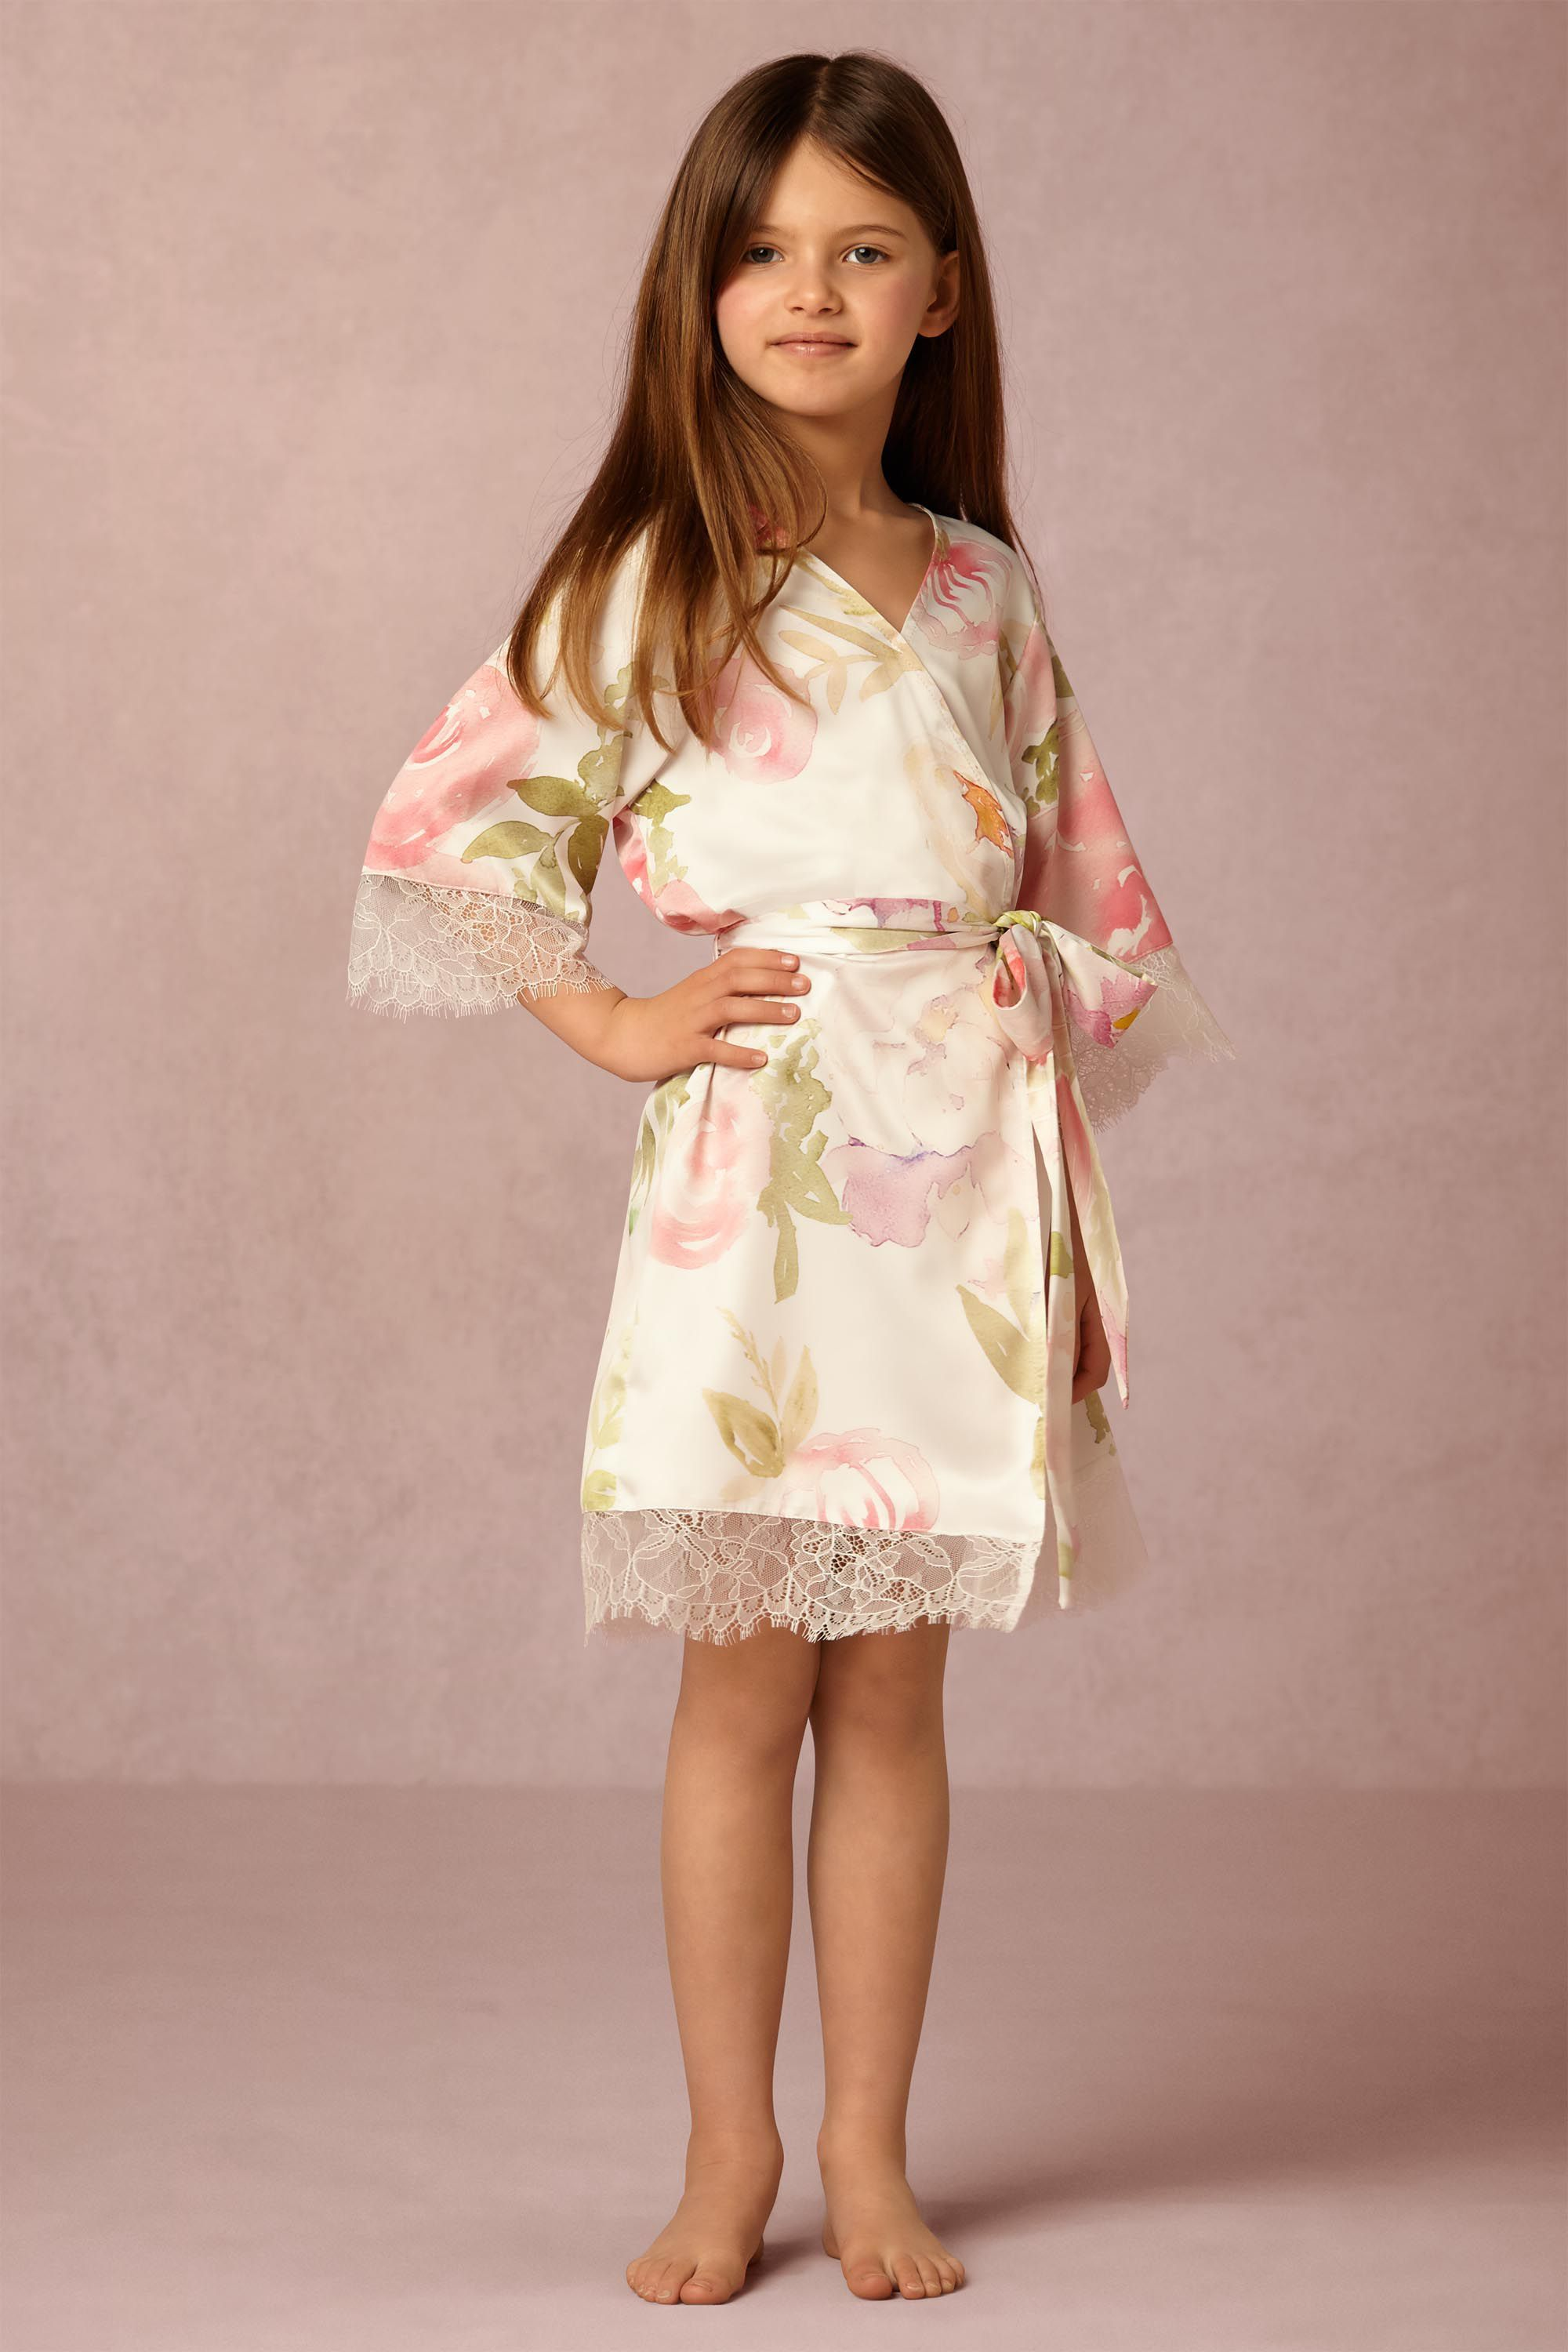 Girls wedding dress  BHLDN Garden Girl Robe in Bridesmaids Flower Girl Dresses  BHLDN